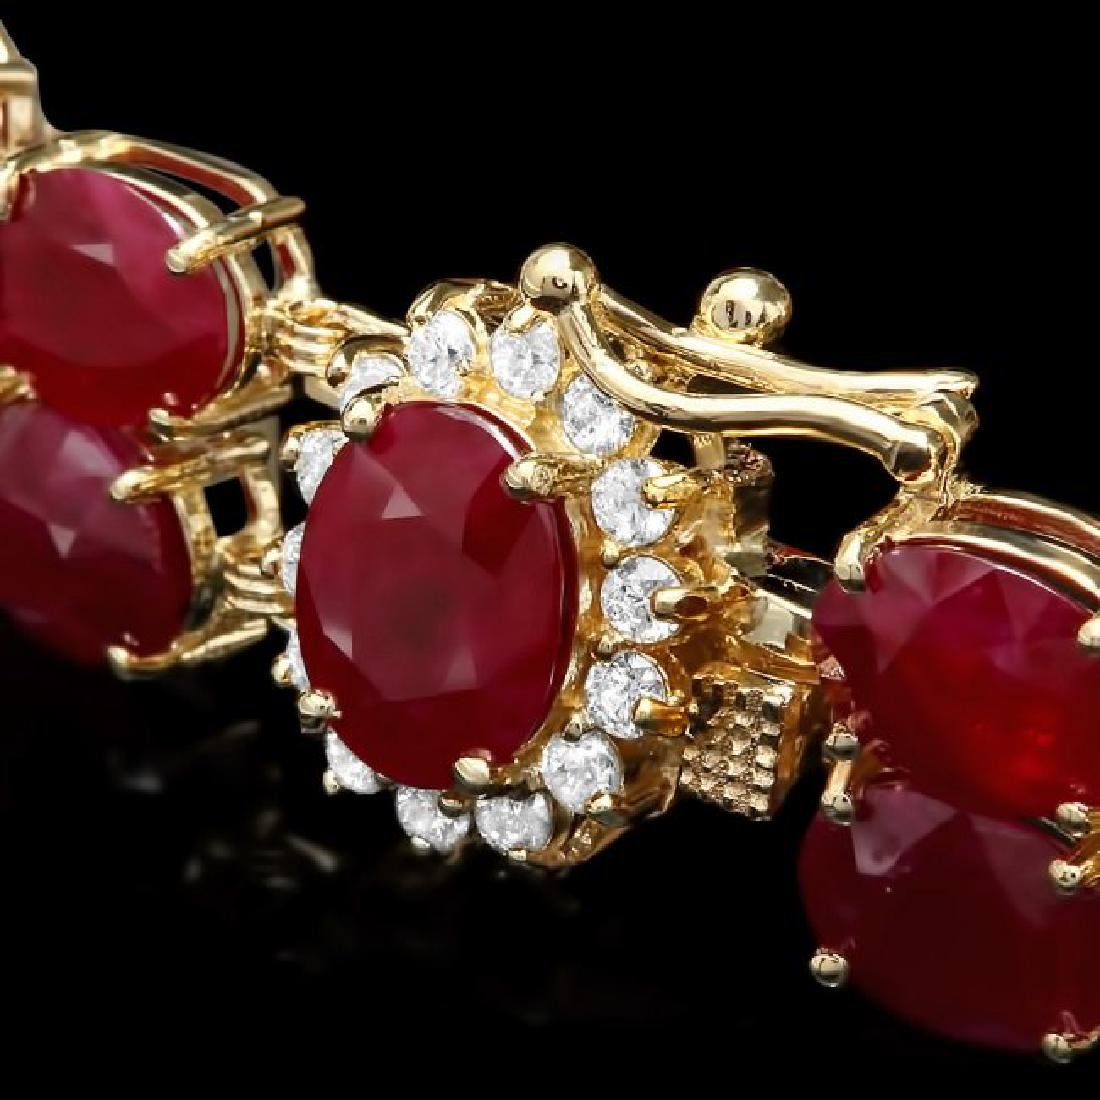 14k Gold 53.00ct Ruby 0.50ct Diamond Bracelet - 2